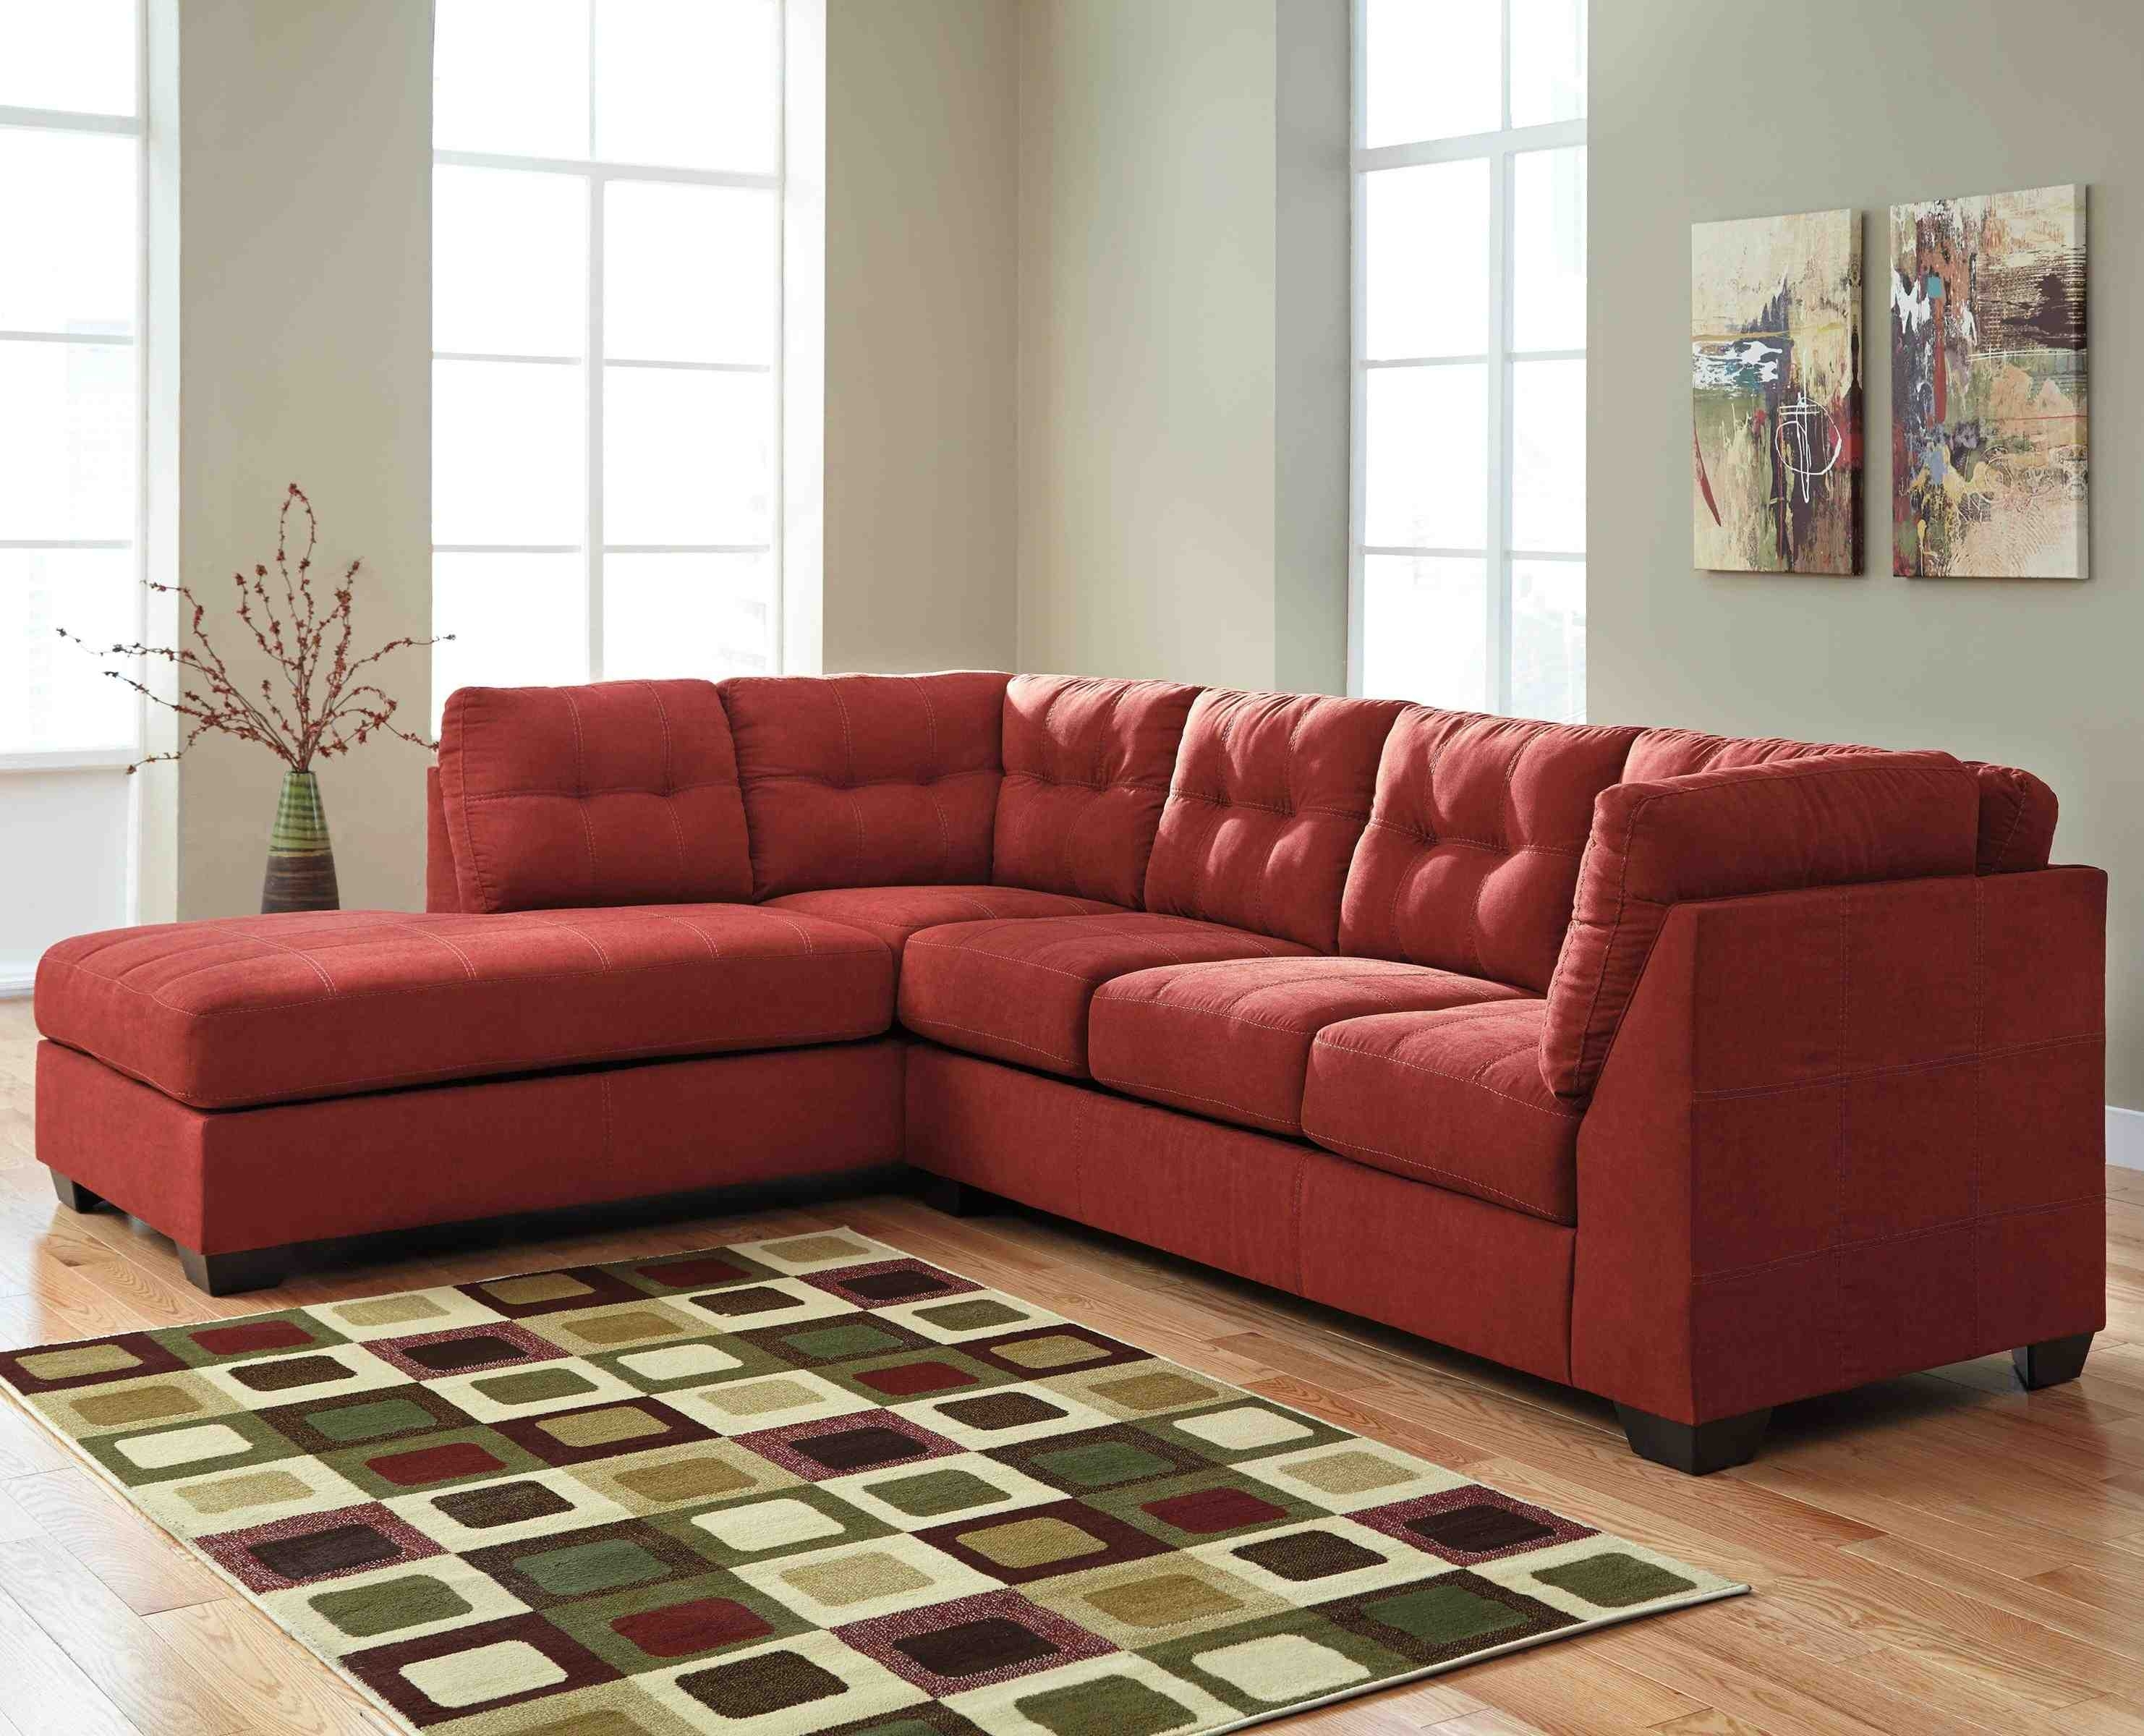 Microfiberctional Sofa With Chaise Amazing Photo Inspirations throughout Arrowmask 2 Piece Sectionals With Sleeper & Right Facing Chaise (Image 21 of 30)